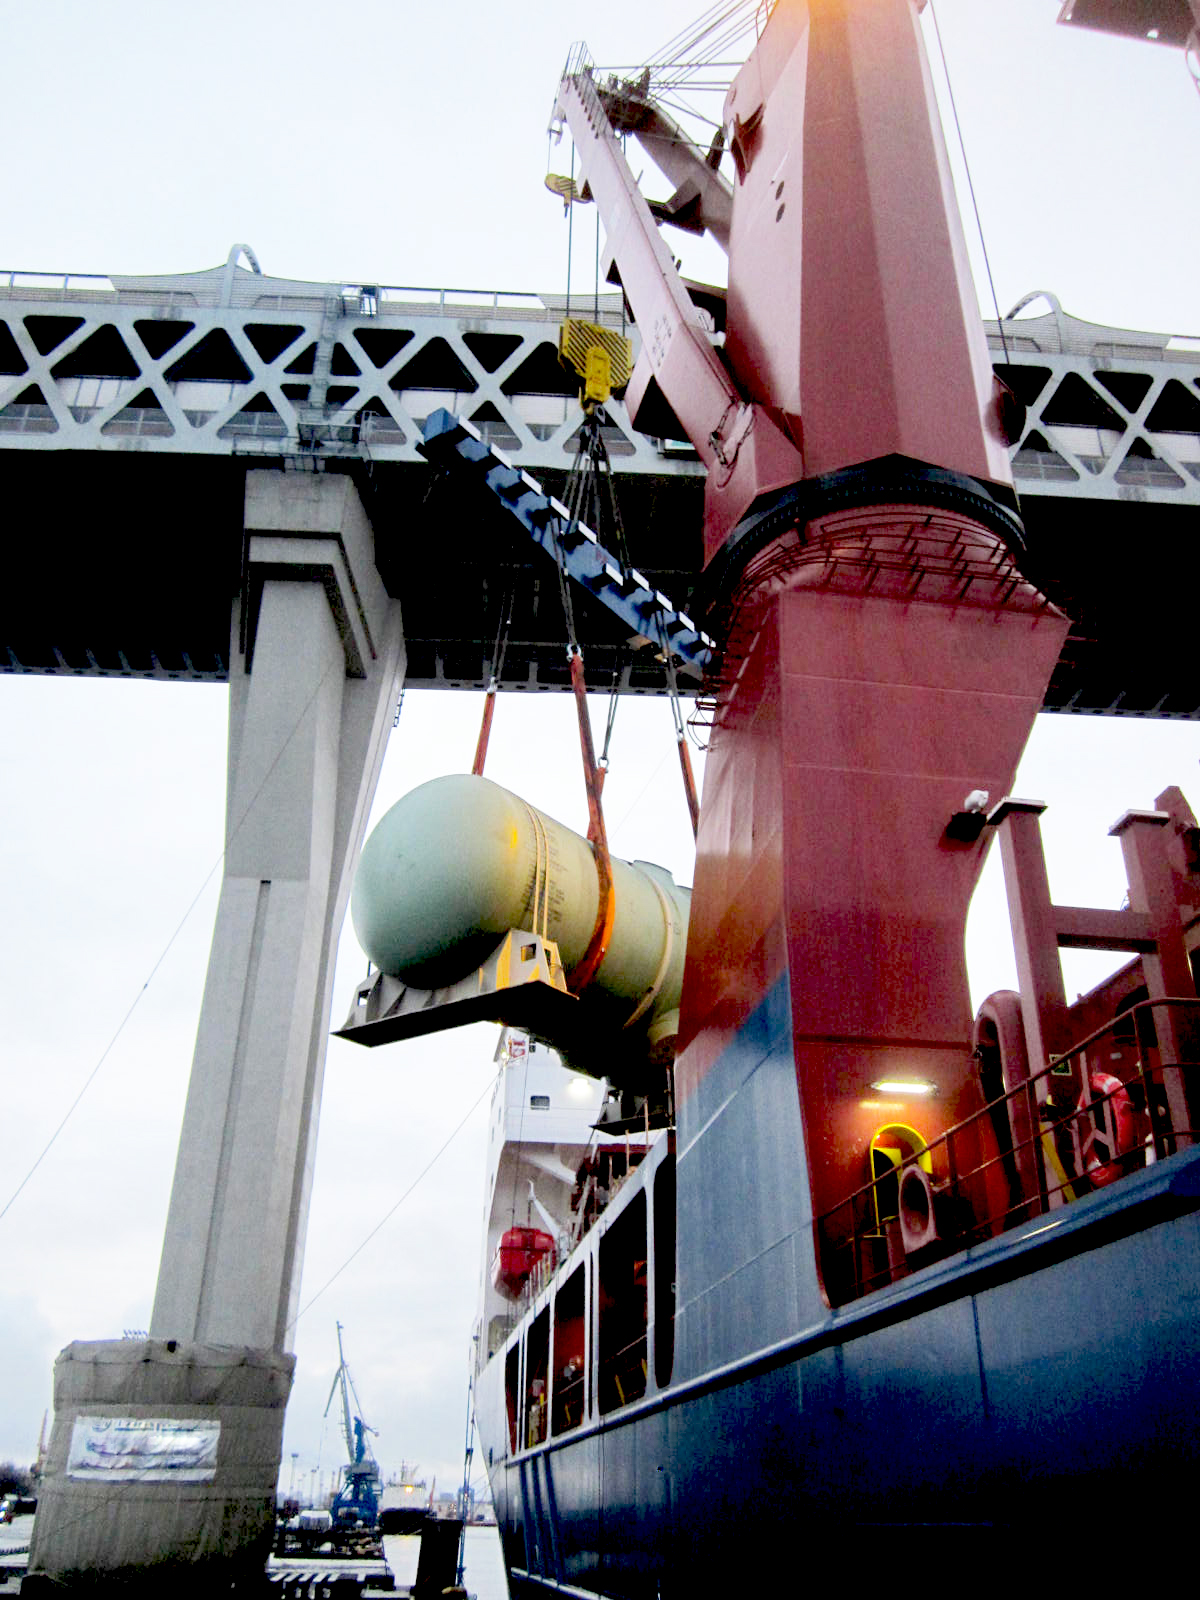 Reactor  pressure vessel and core catcher have been shipped for Kudankulam NPP Unit 4 in India